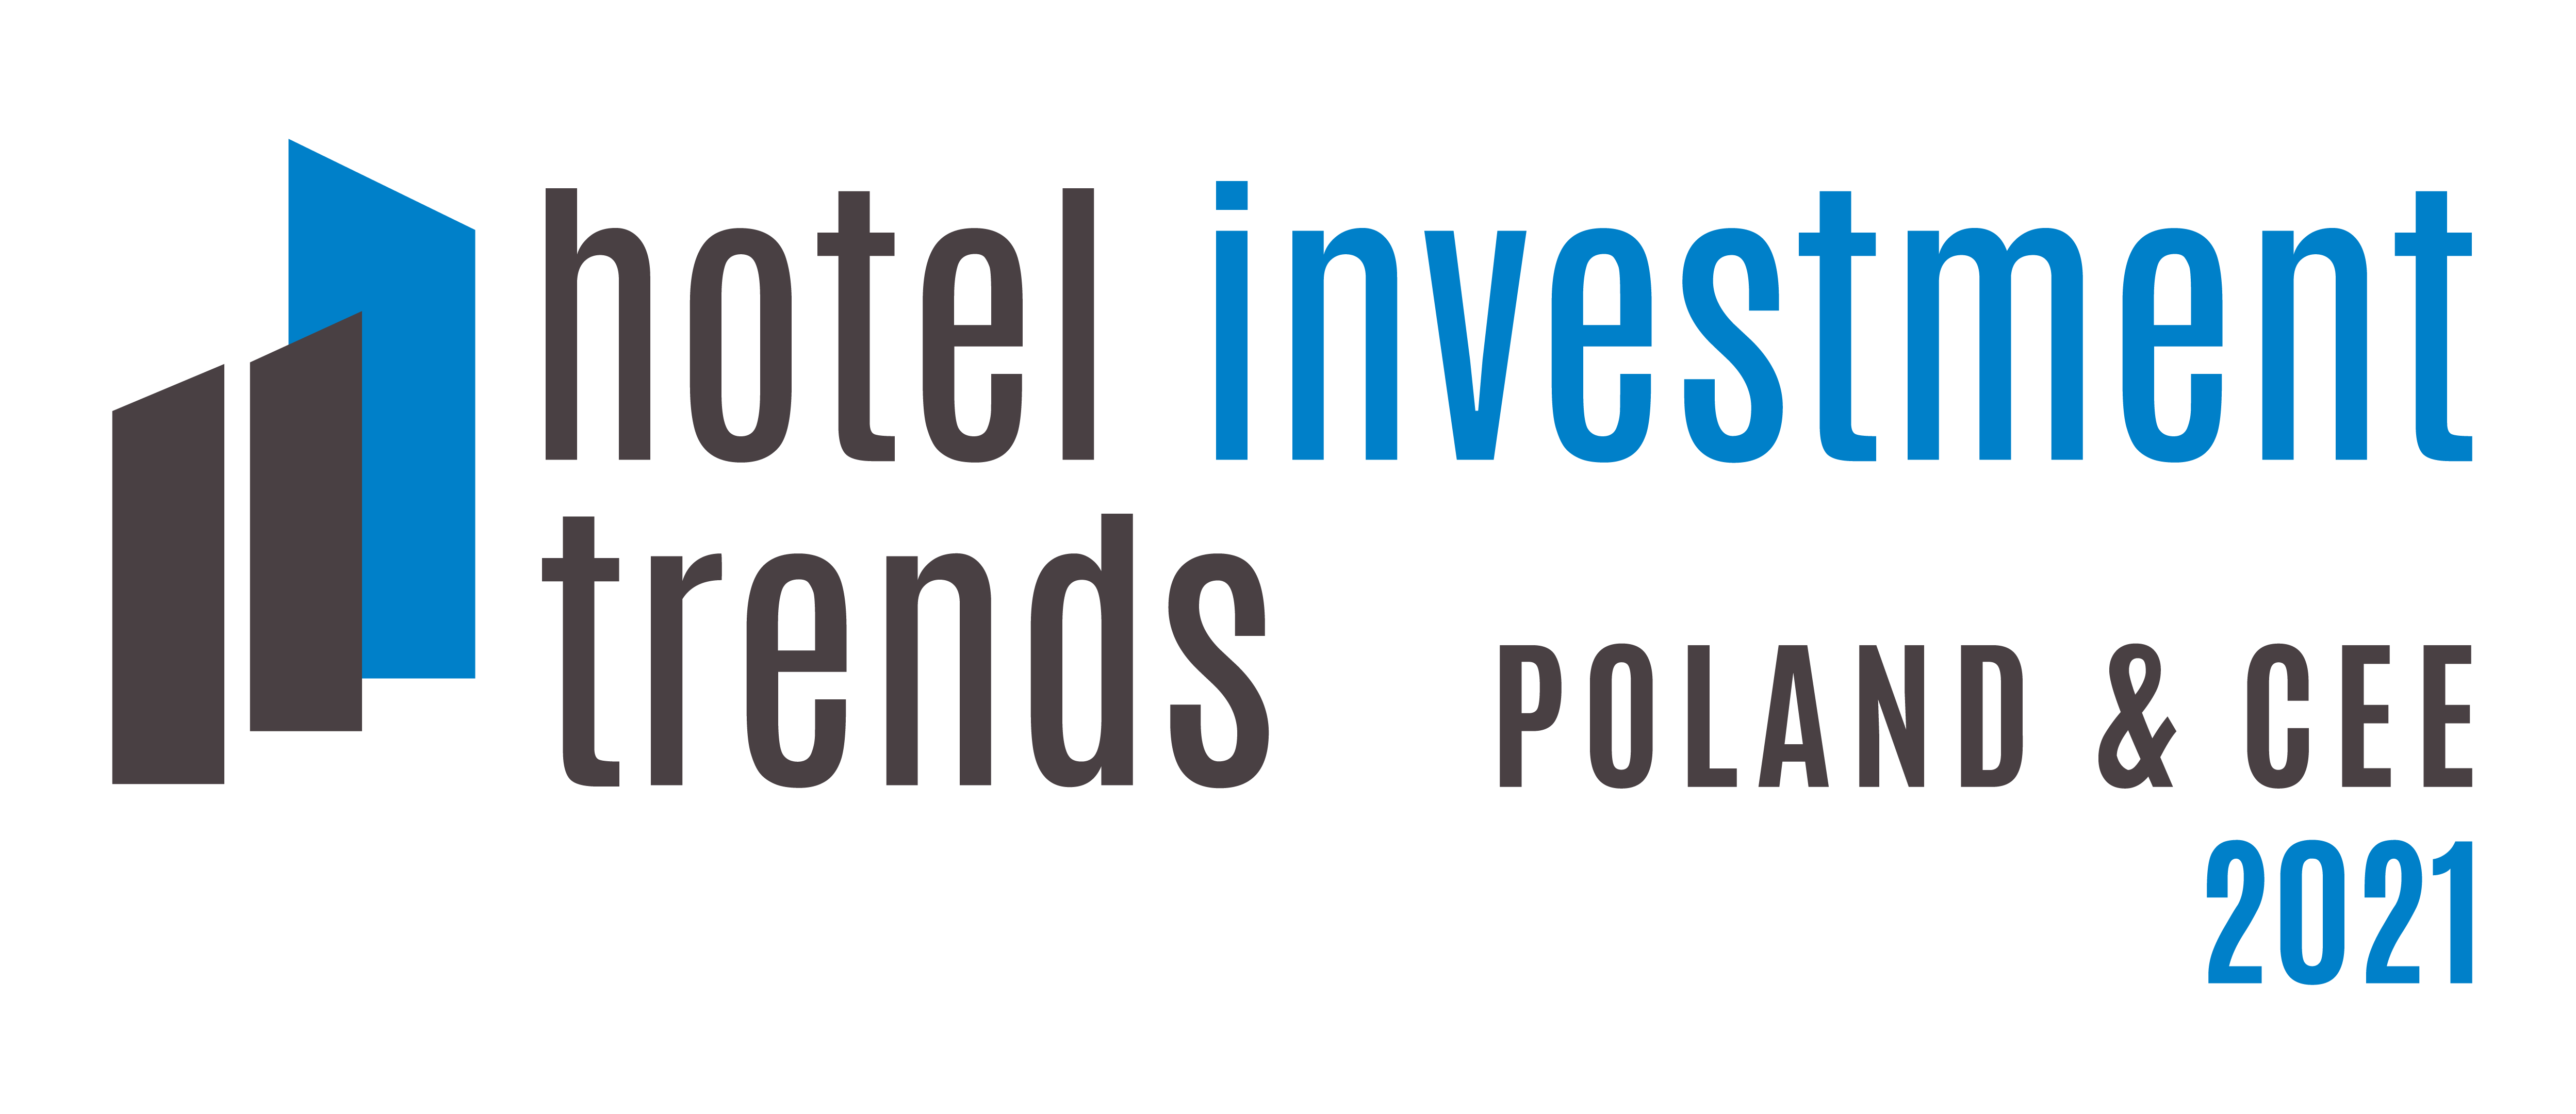 Hotel Investment Trends 2021 Logo